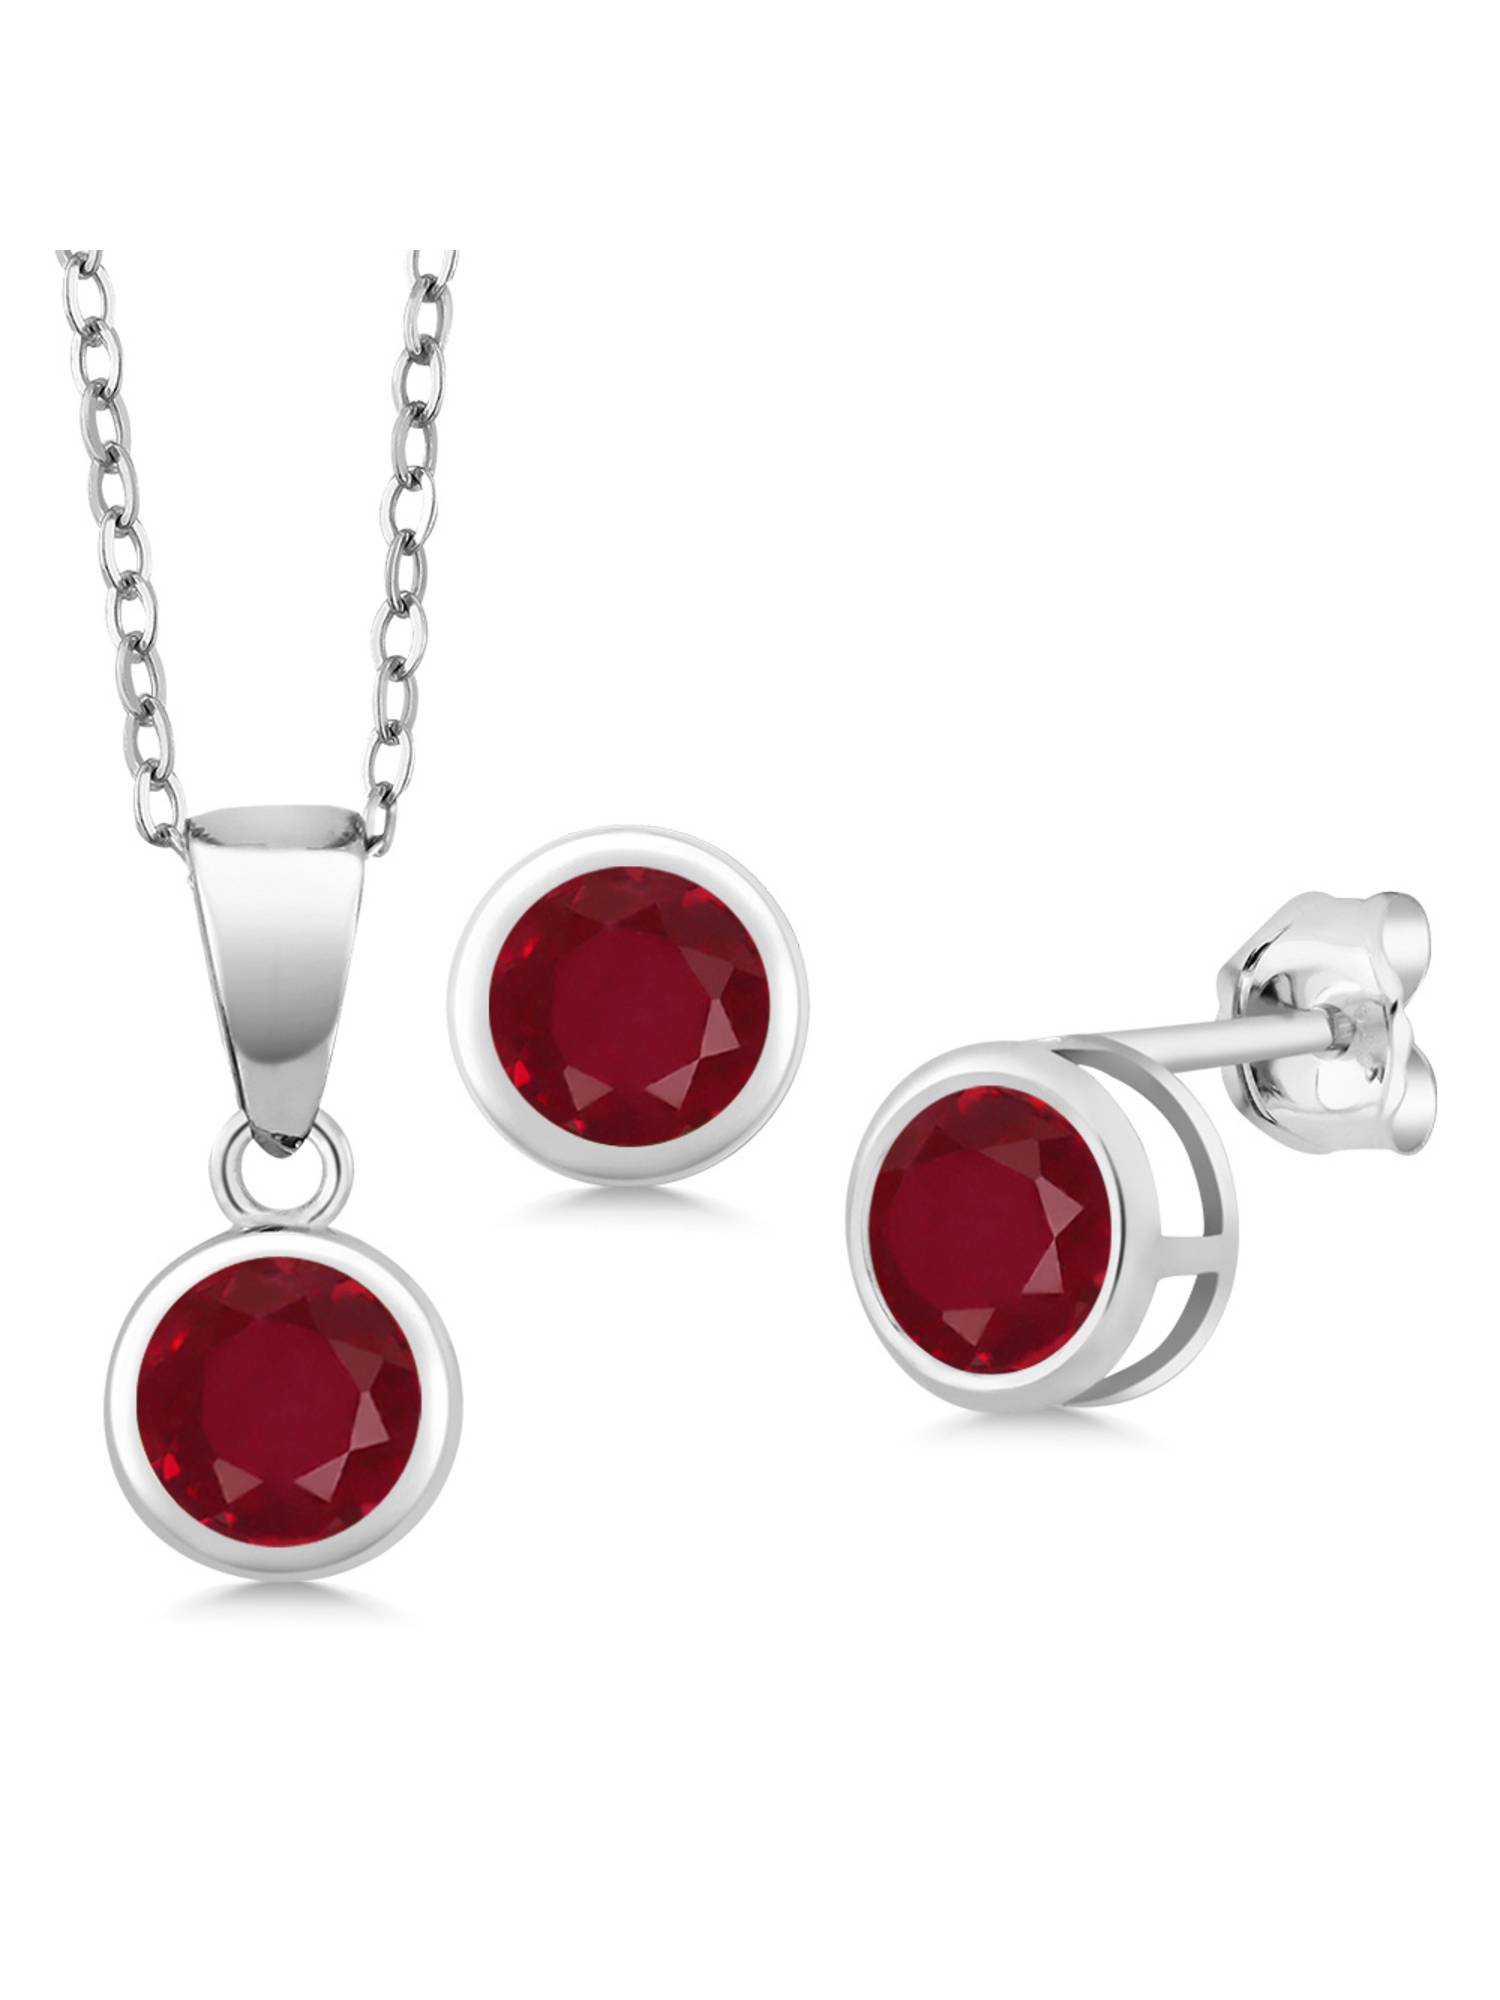 1.65 Ct Round Red Ruby 925 Sterling Silver Pendant Earrings Set With Chain by